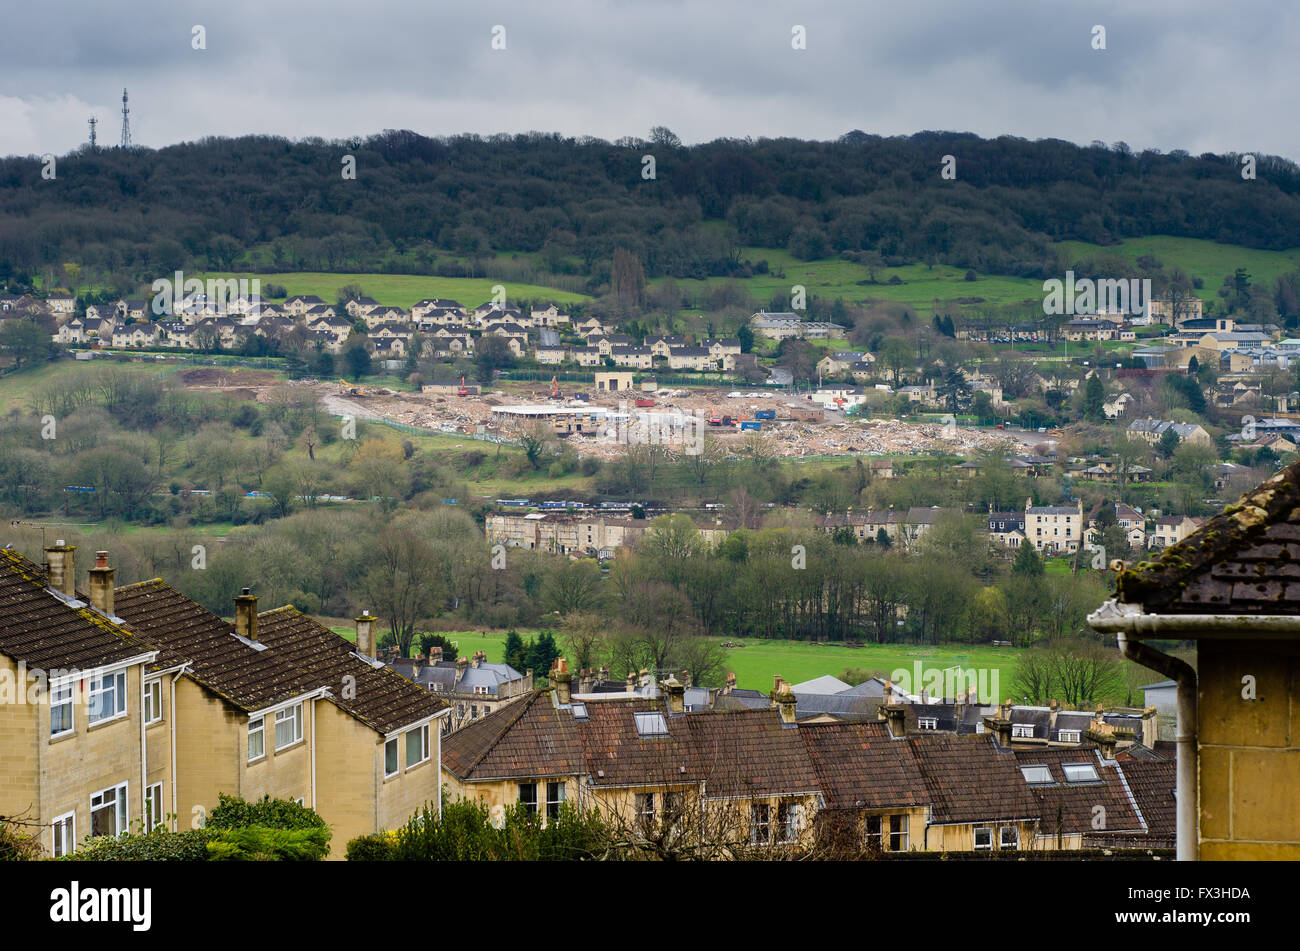 Demolition of MOD buildings. Former Ministry of Defence site is being clear for housing on Warminster Road in Bath, - Stock Image